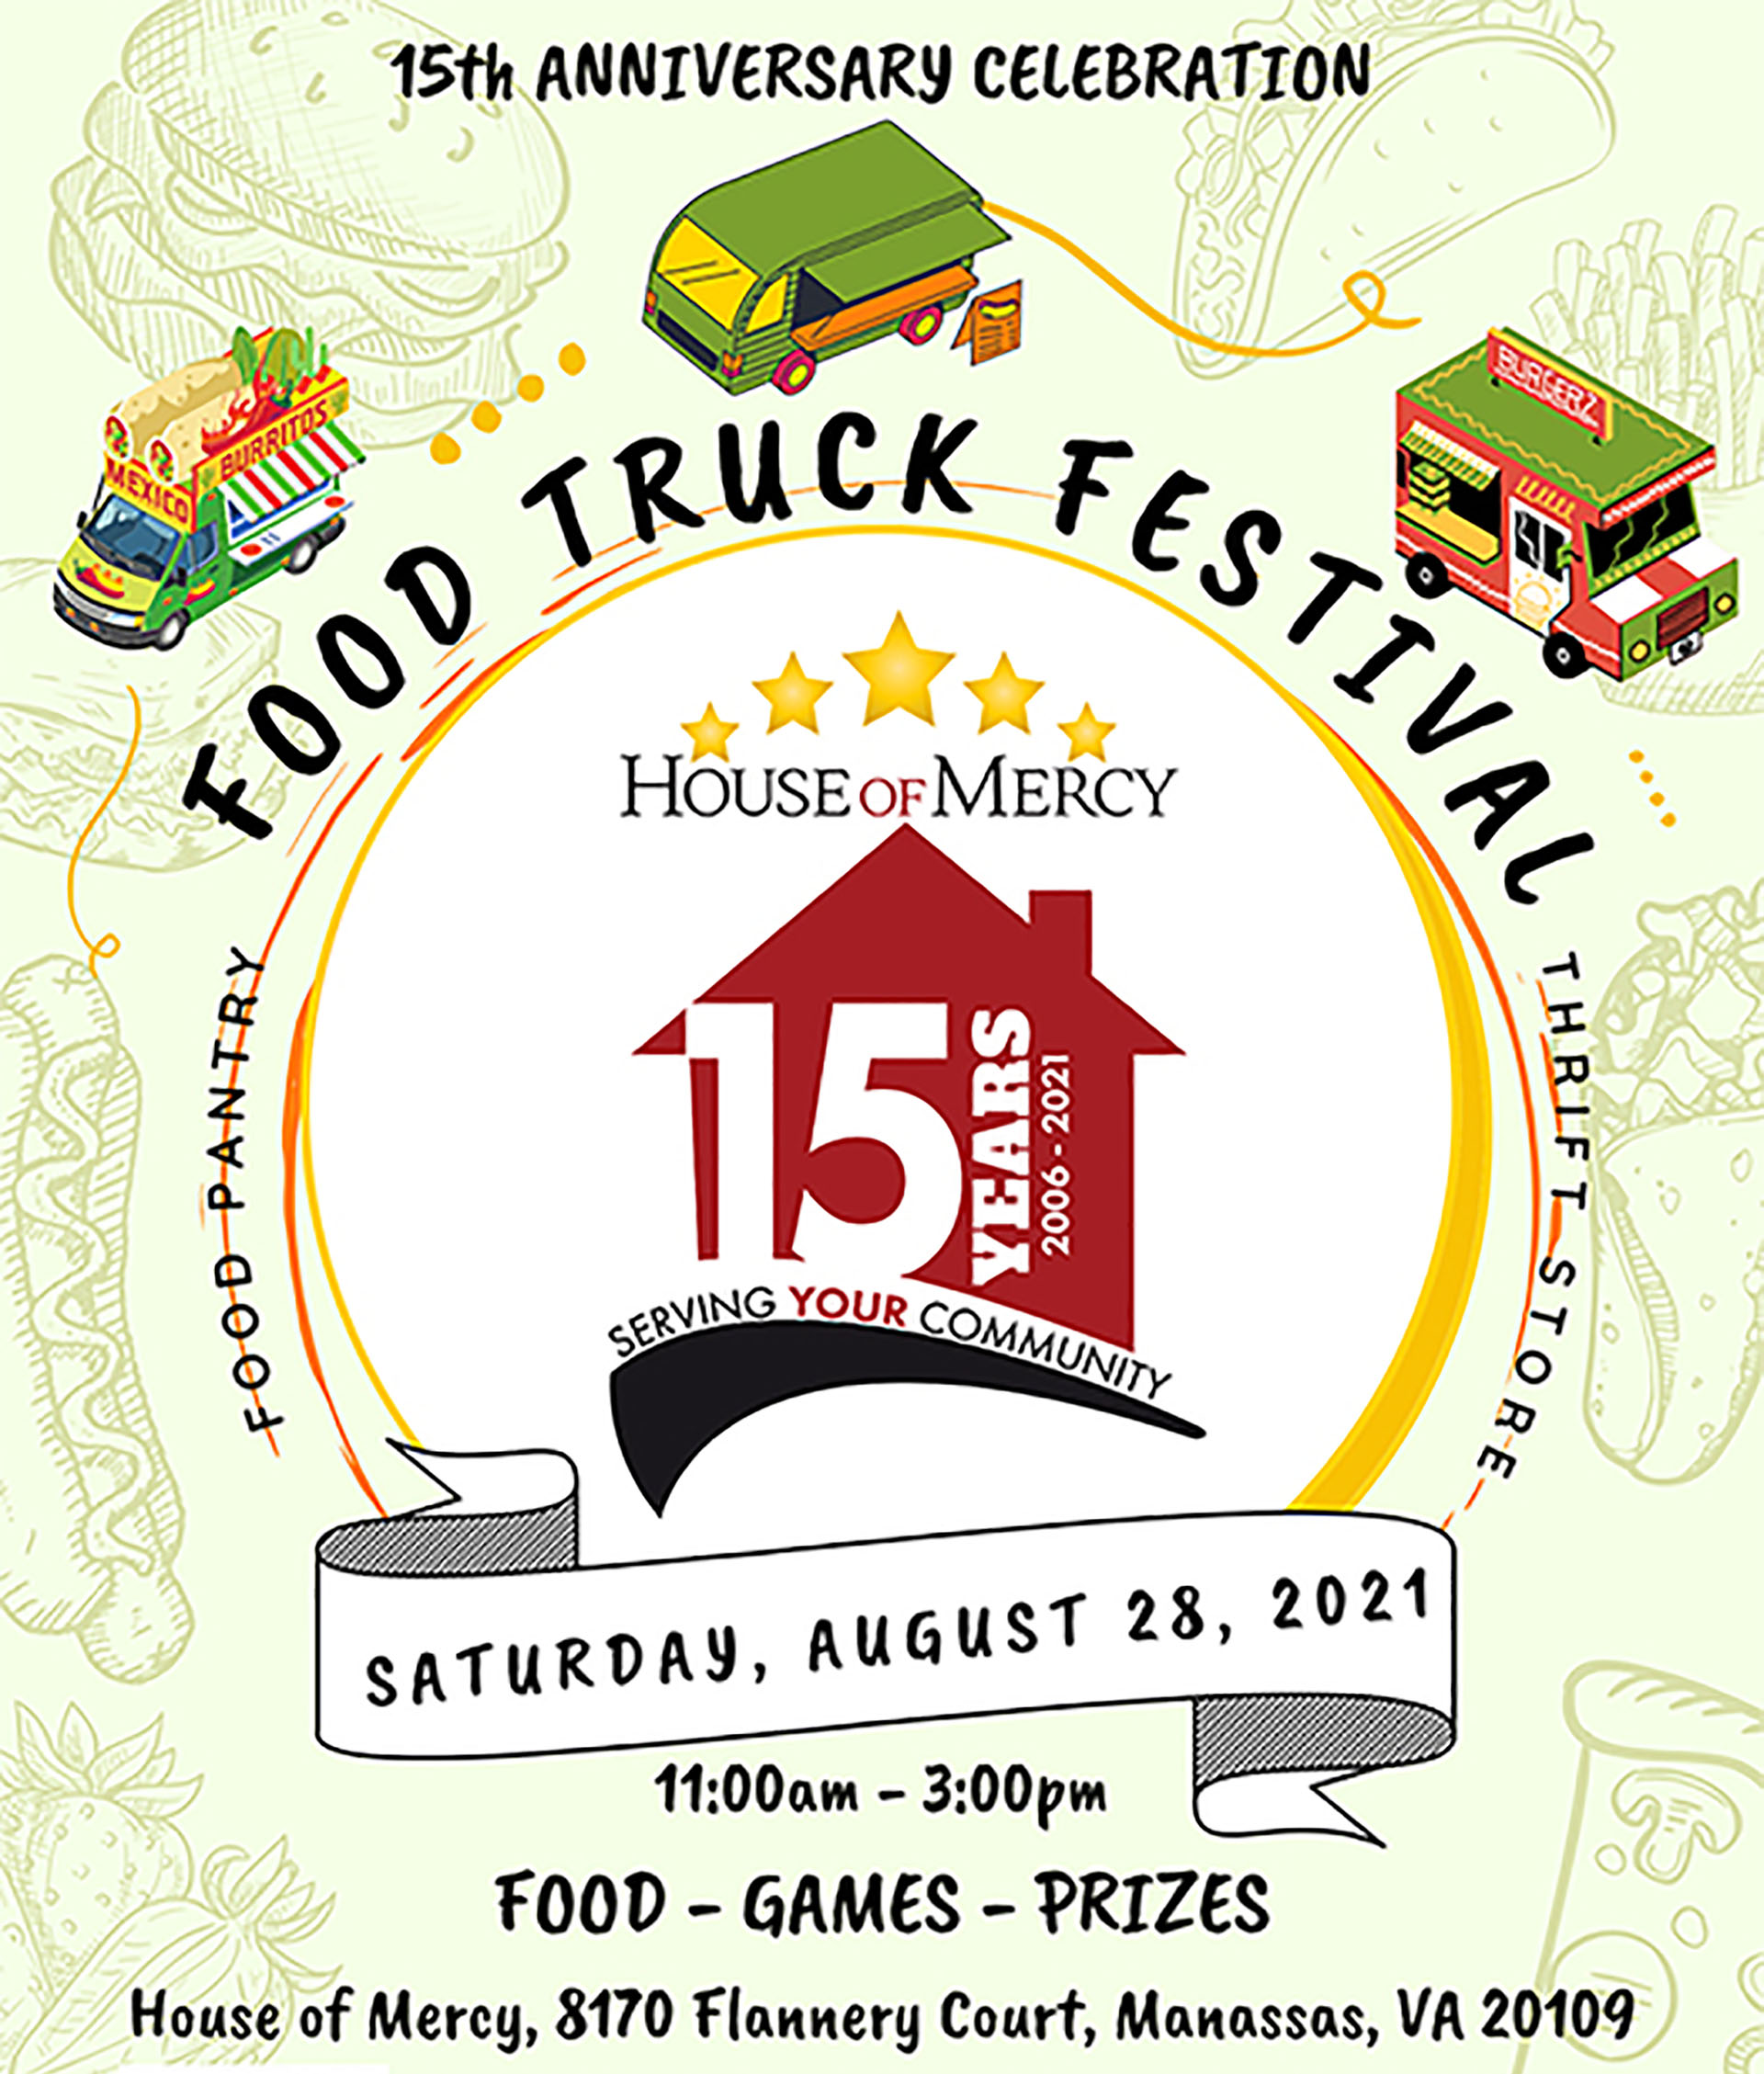 Food Truck Festival to be held by House of Mercy